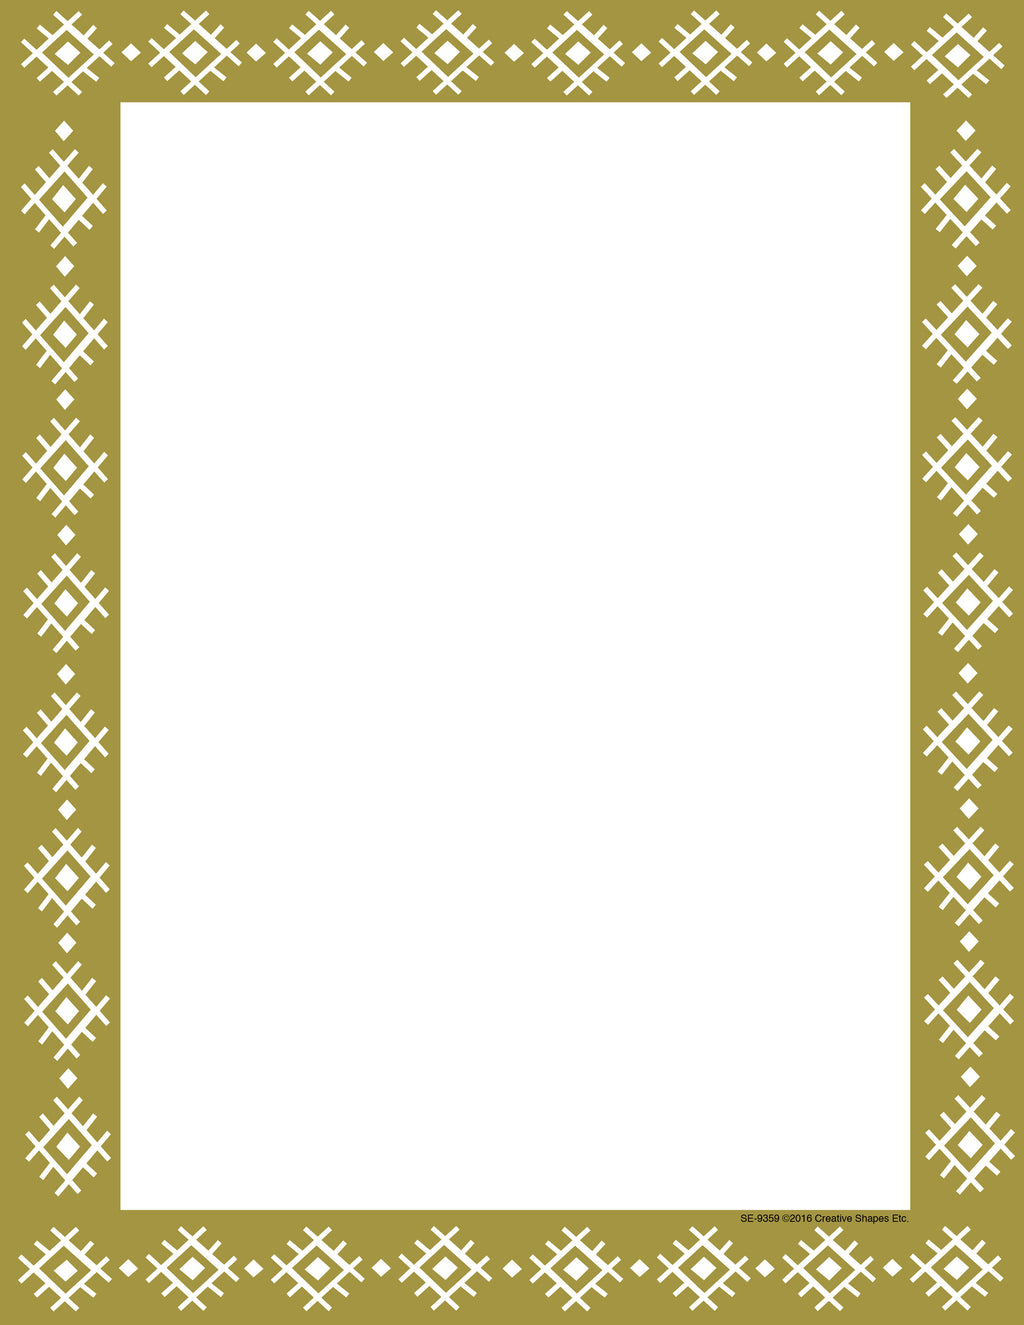 Designer Paper - Gold Wrapping Paper (50 Sheet Package) - Creative Shapes Etc.